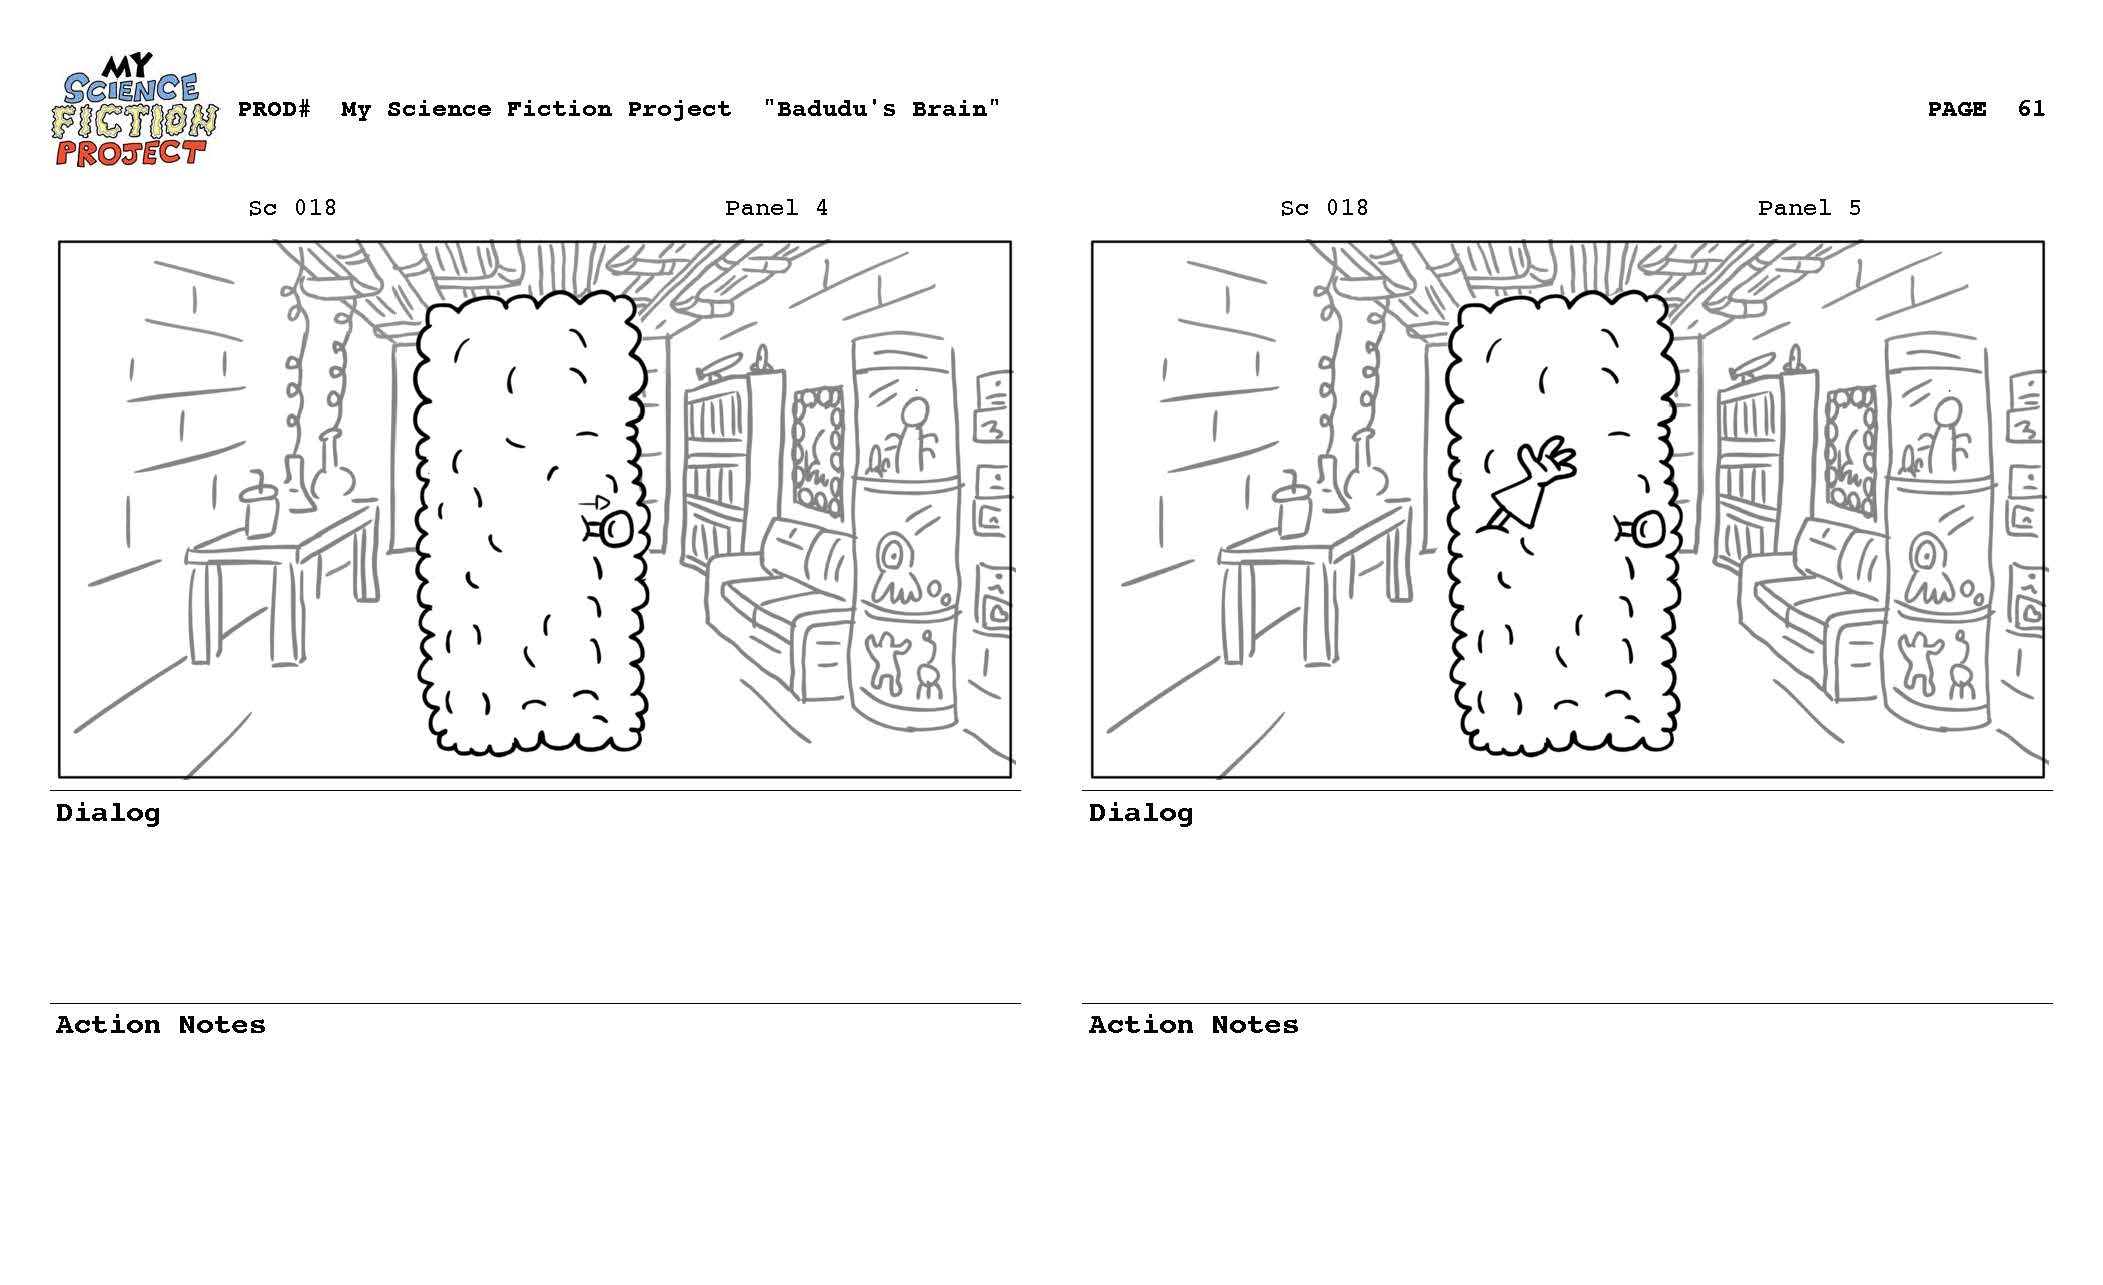 My_Science_Fiction_Project_SB_083112_reduced_Page_061.jpg